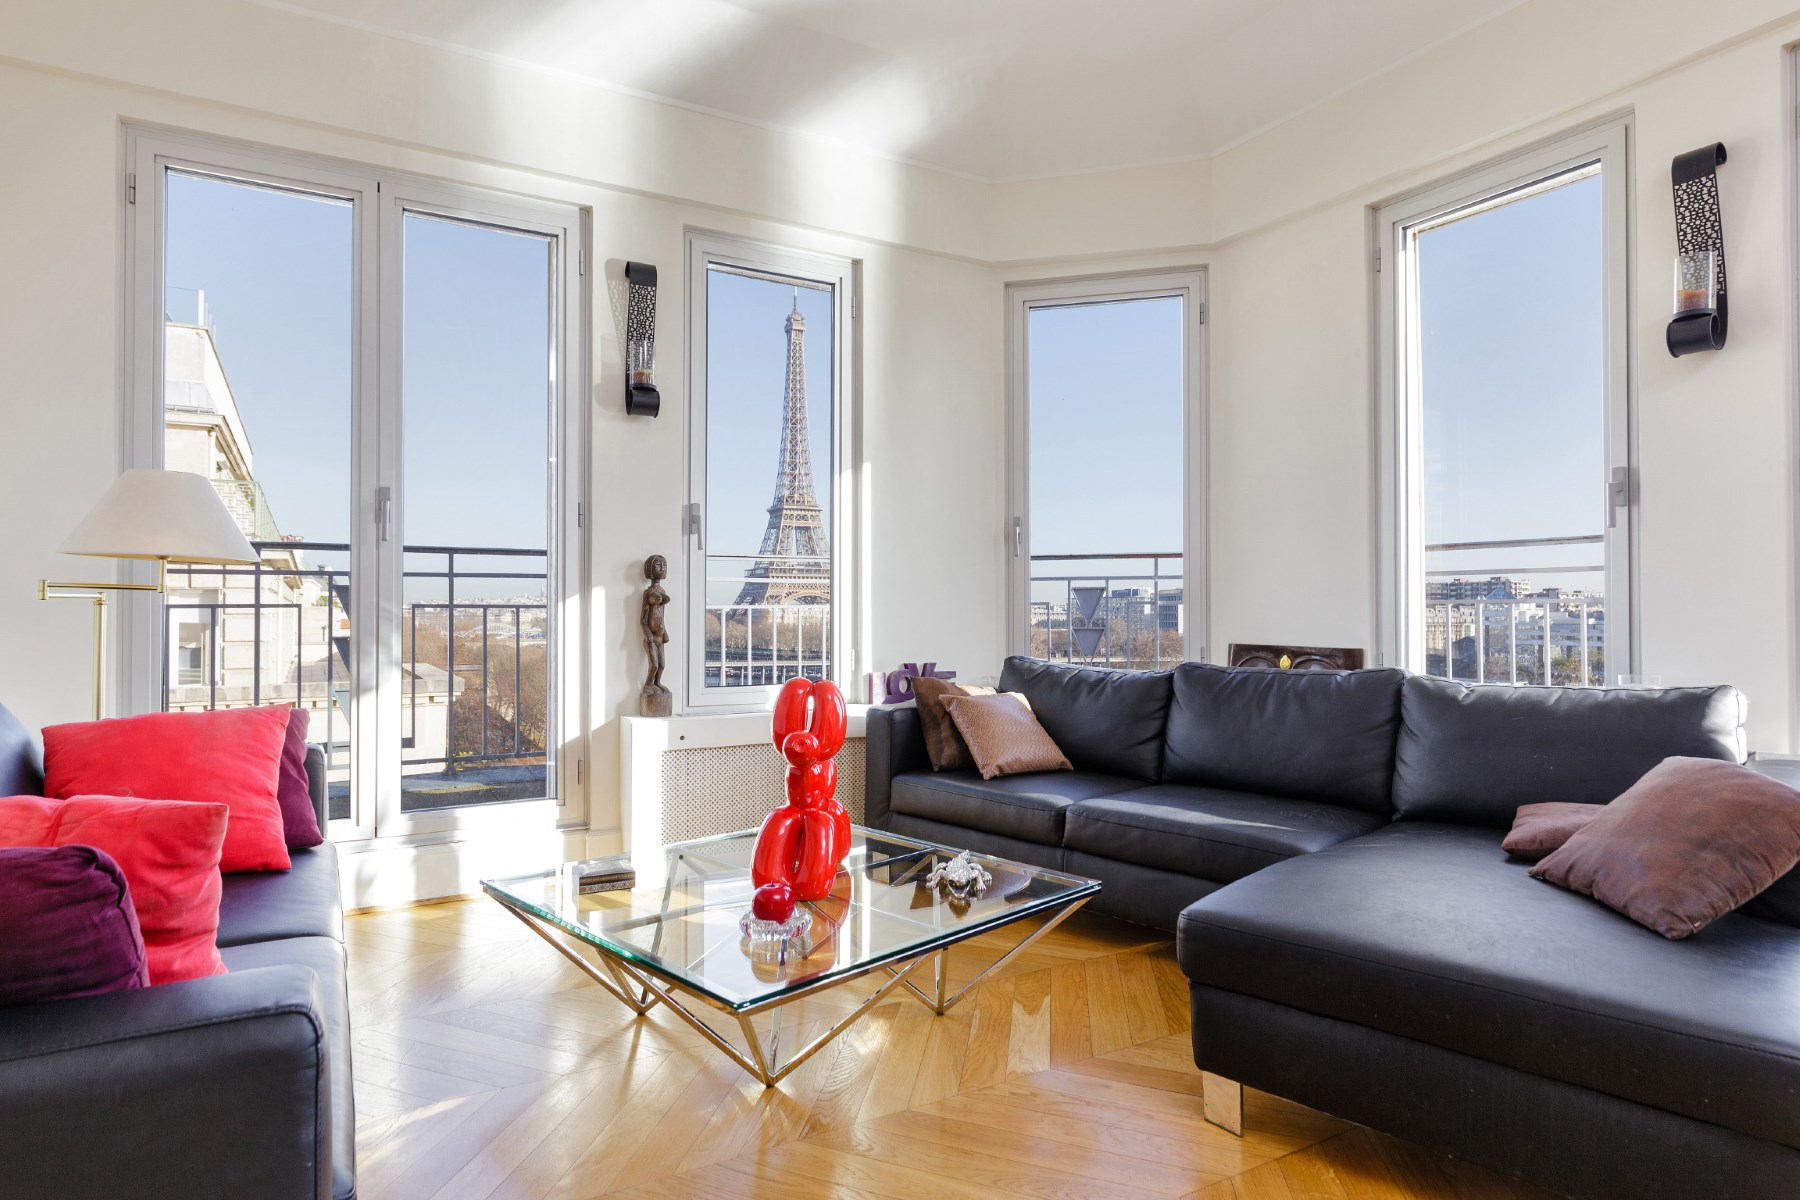 Appartement courte duree paris - Appartement meuble paris location longue duree ...